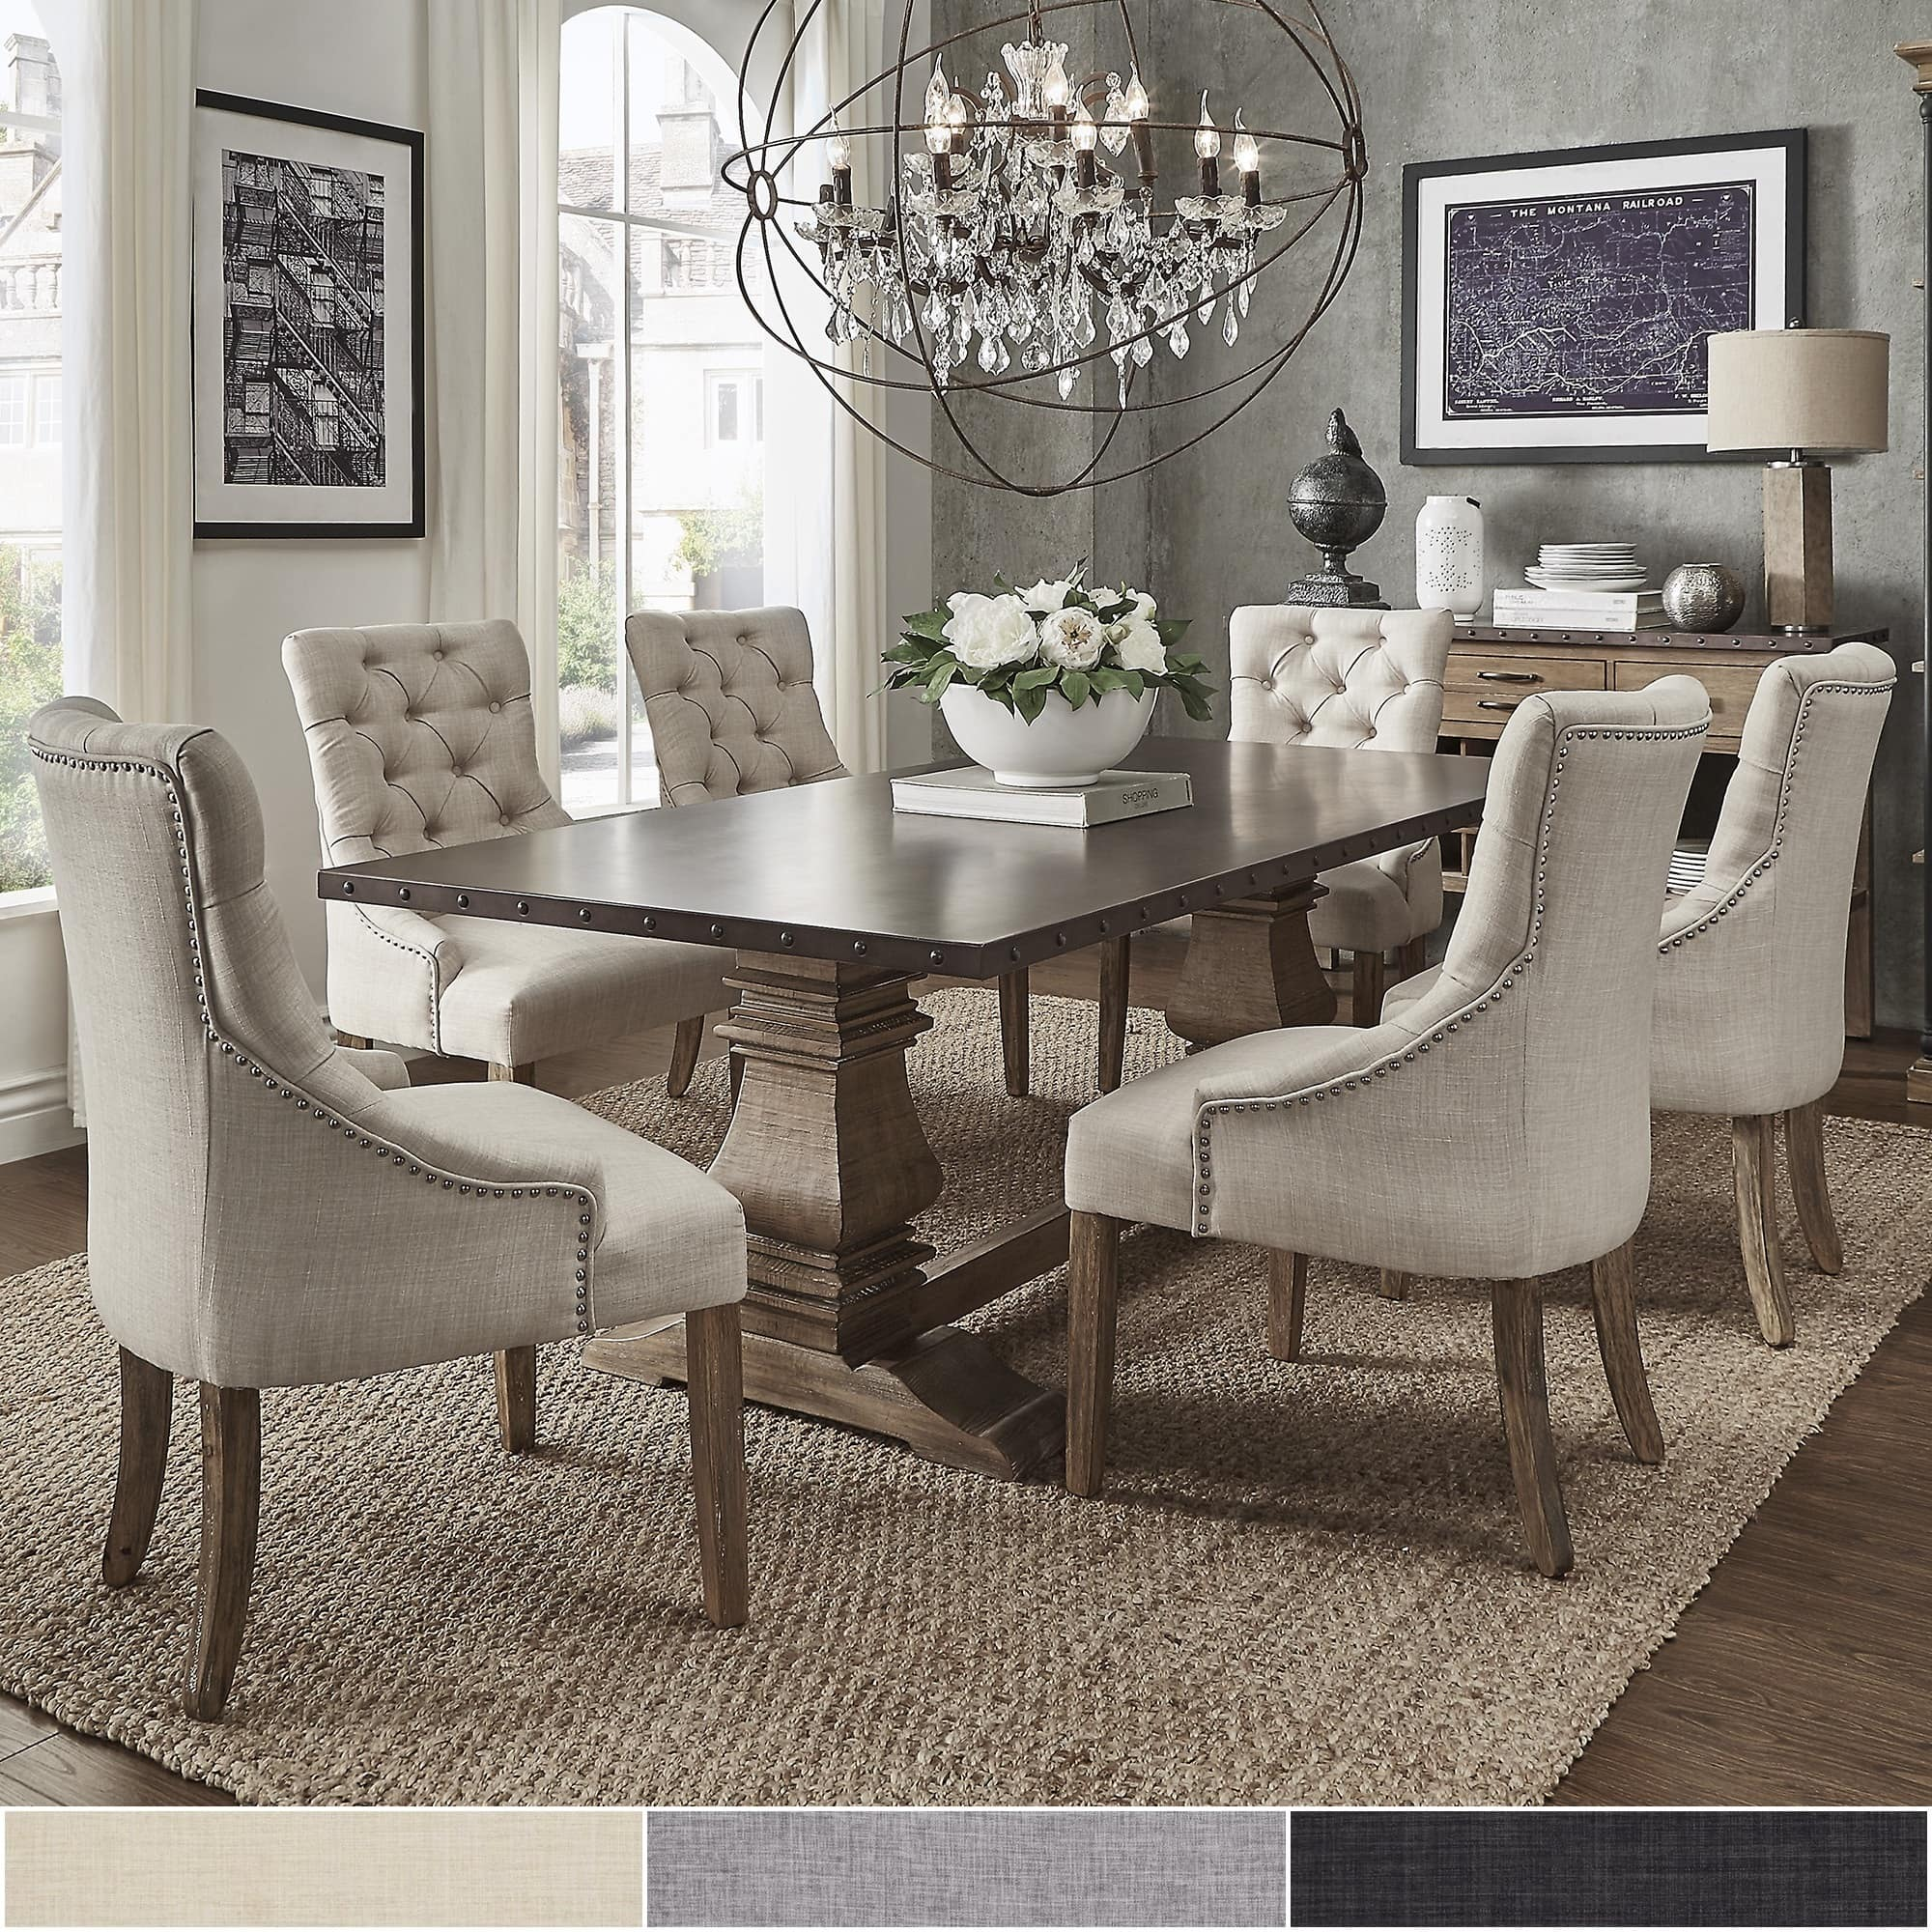 Buy Kitchen & Dining Room Sets Online At Overstock